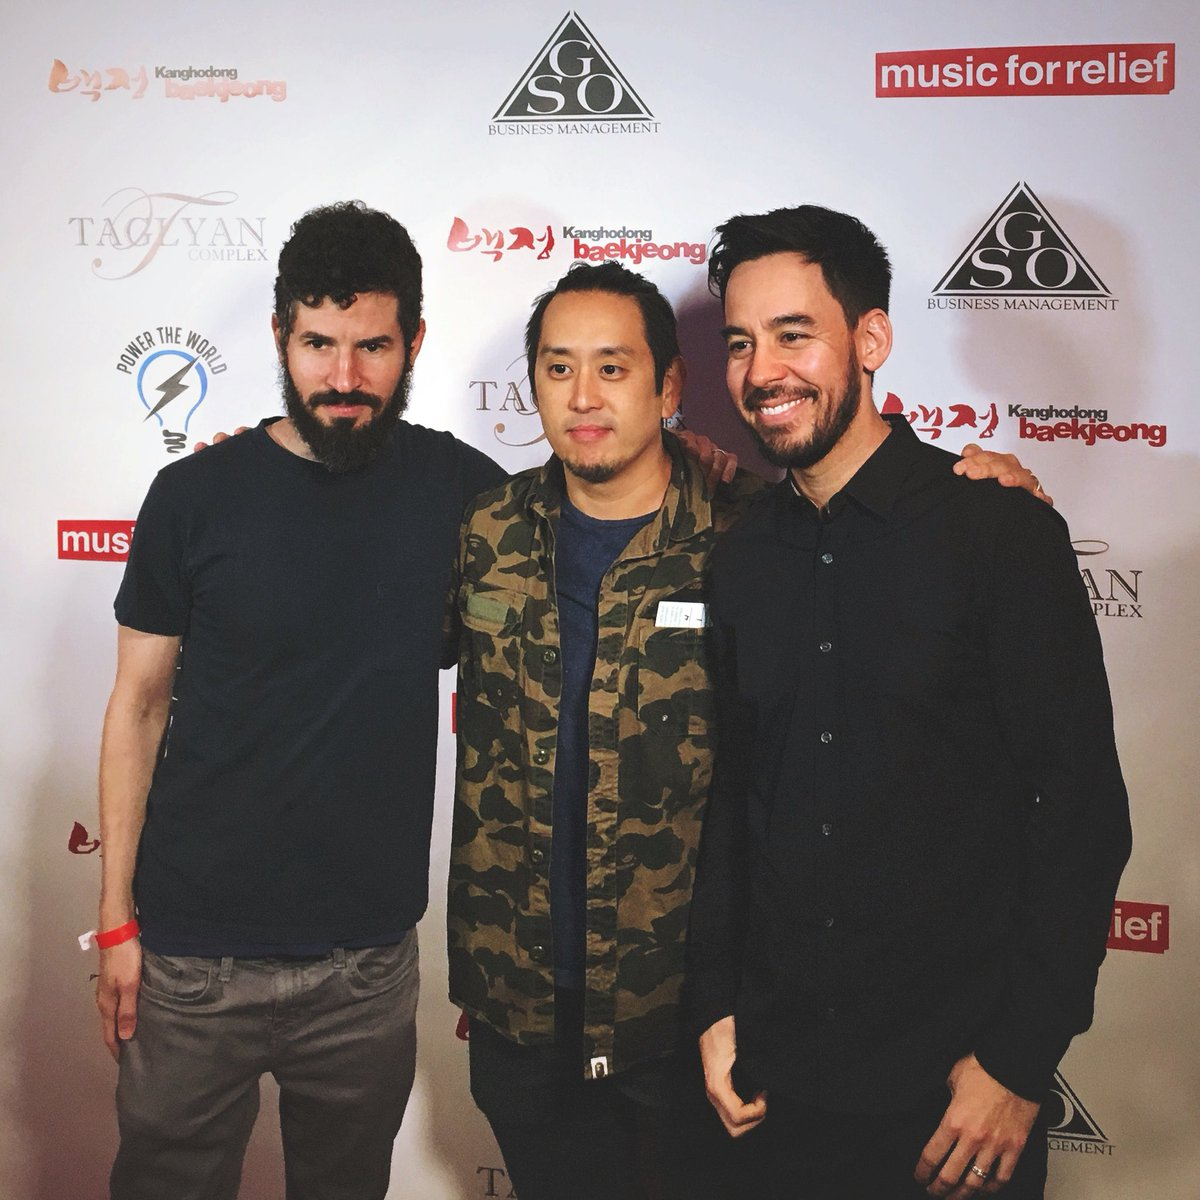 Music for Relief co-founders Brad, Joe, and Mike arriving at #pokerforrelief tonight. https://t.co/zRpmrj7Ts1